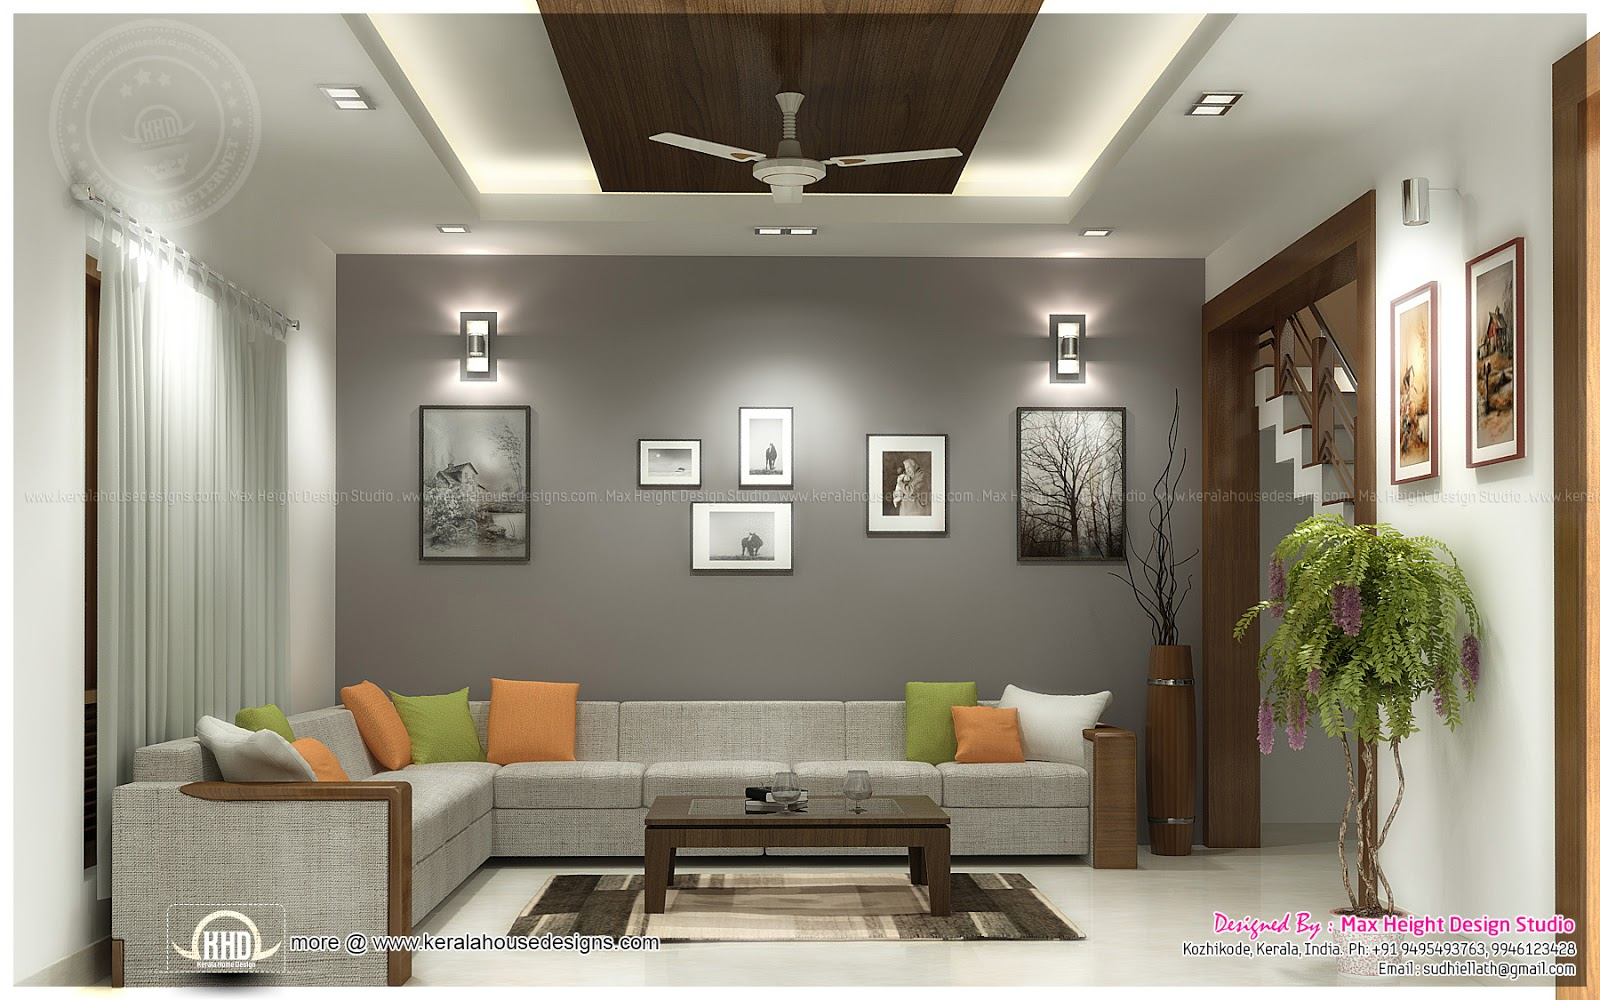 Beautiful interior ideas for home kerala home design and for Interior design ideas images